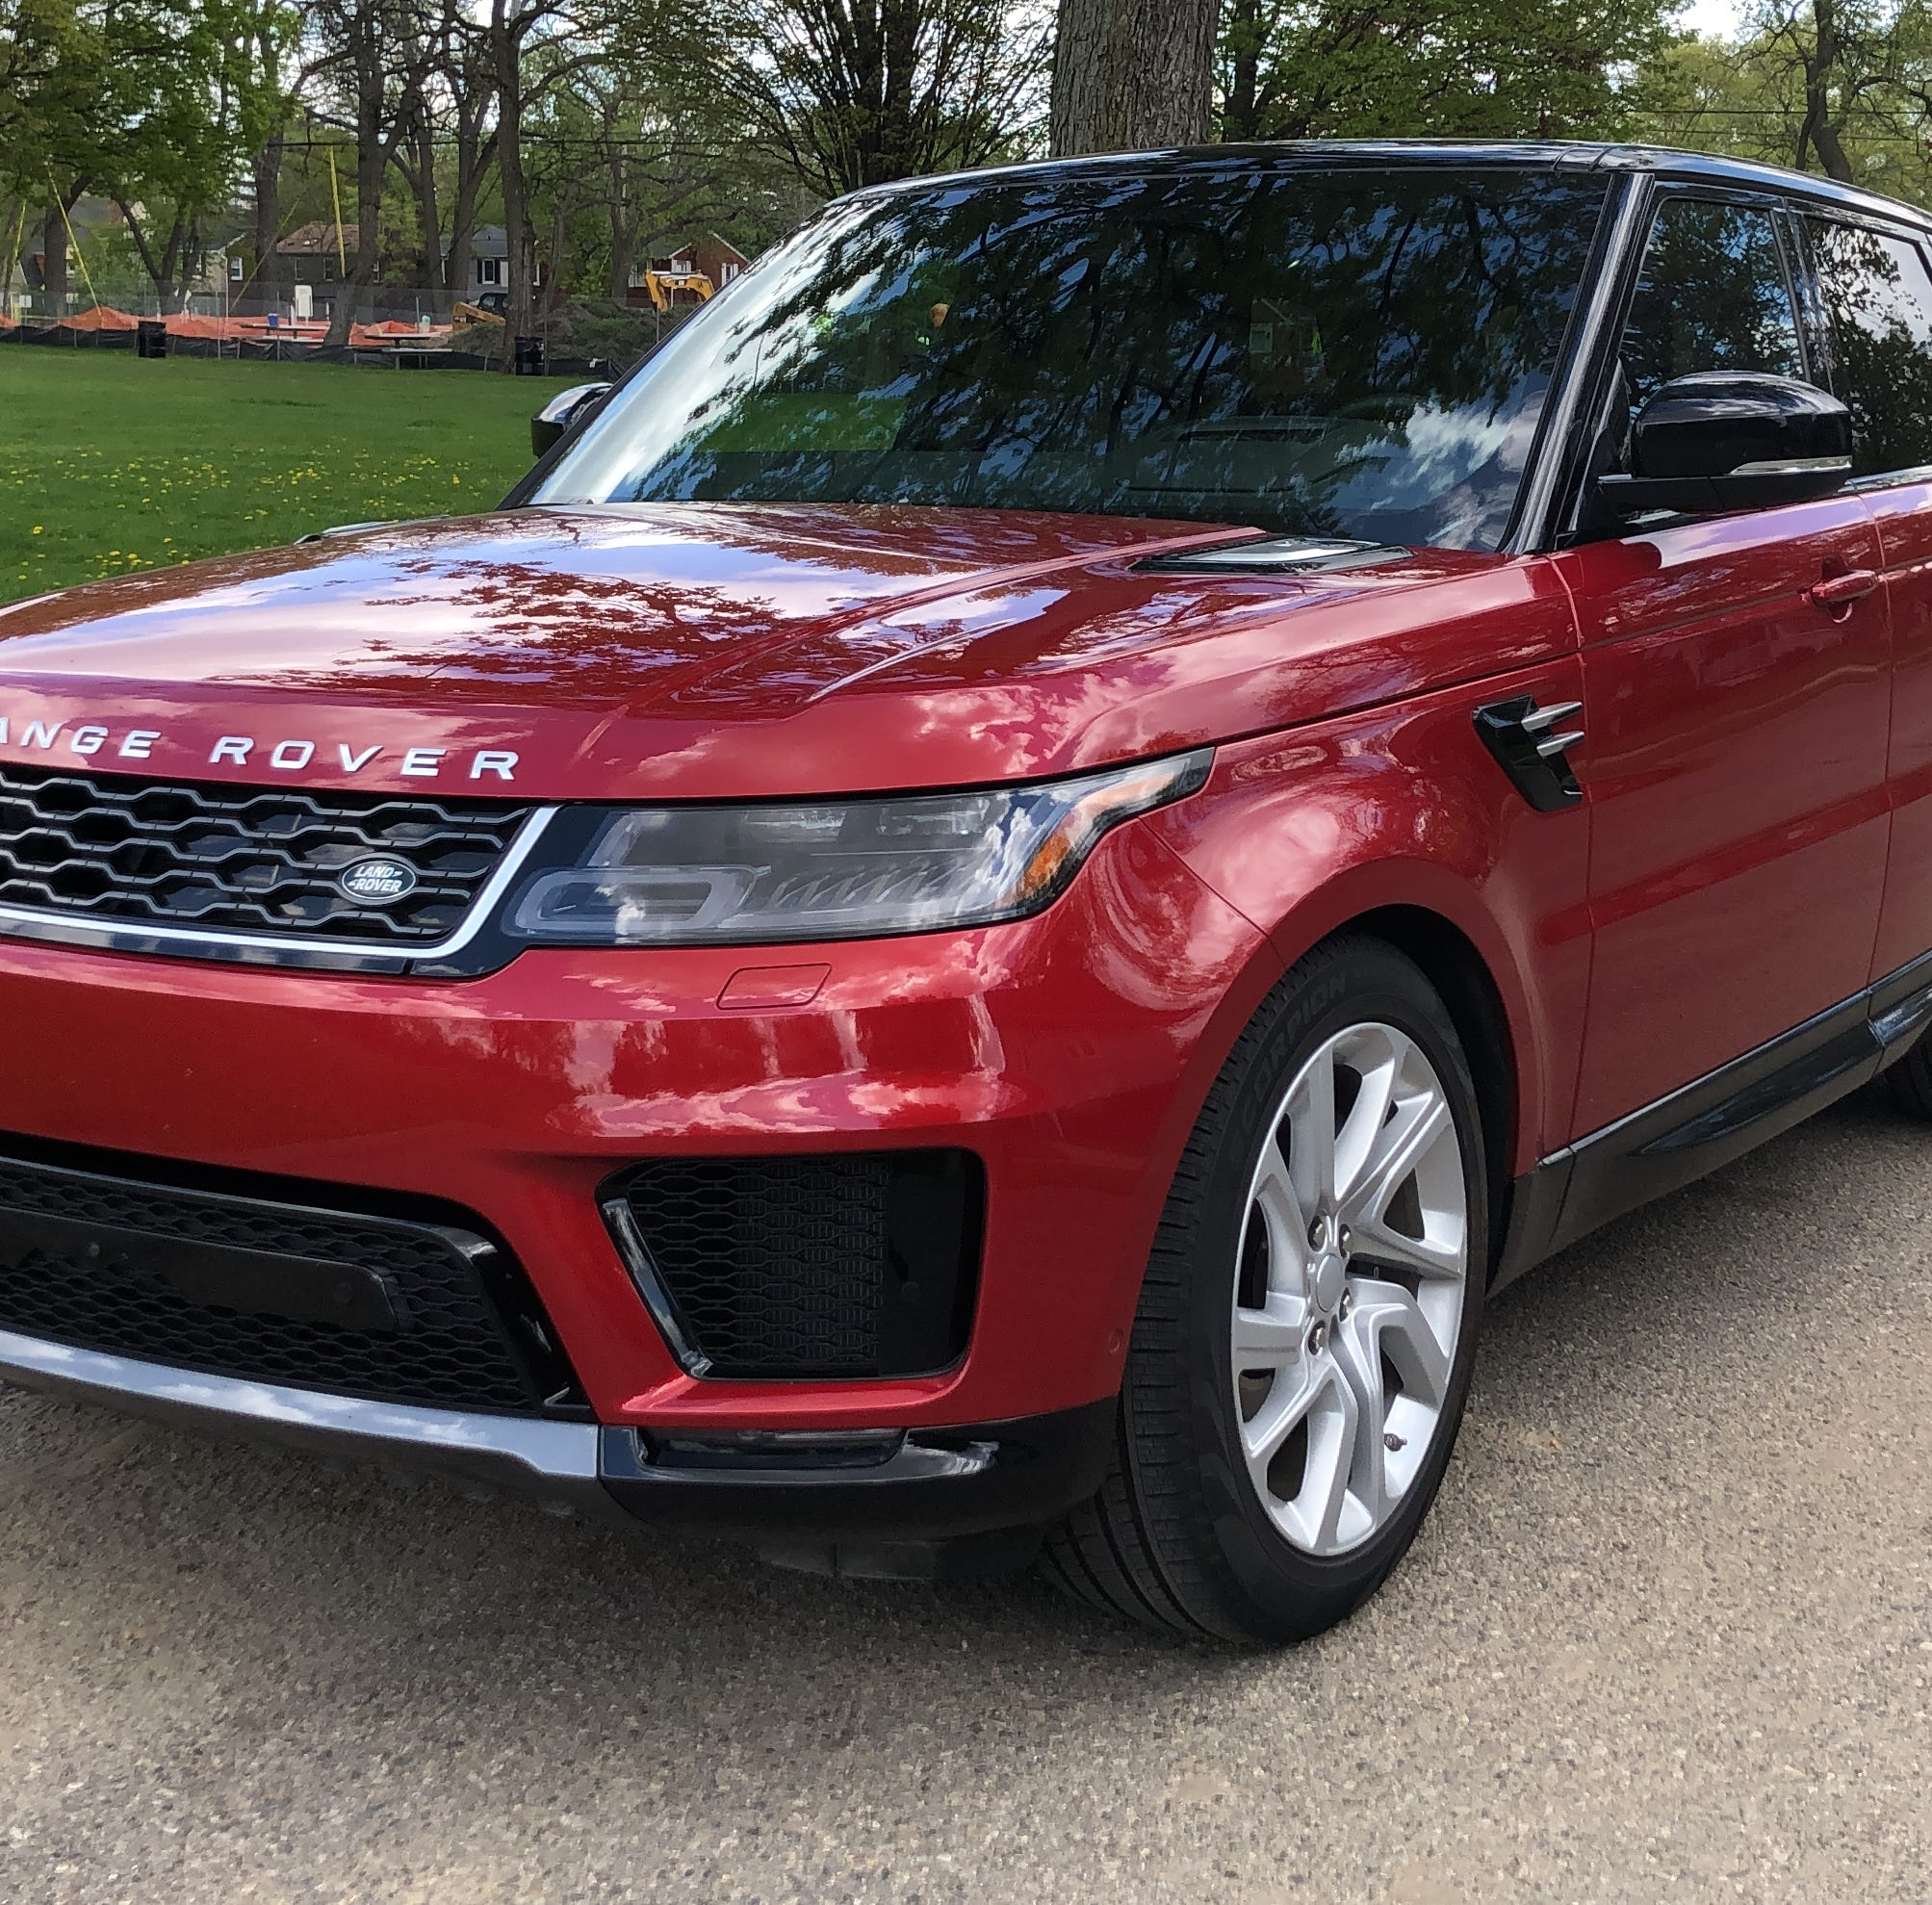 You'll never to able to drive this rare 2019 Range Rover Sport — but I did